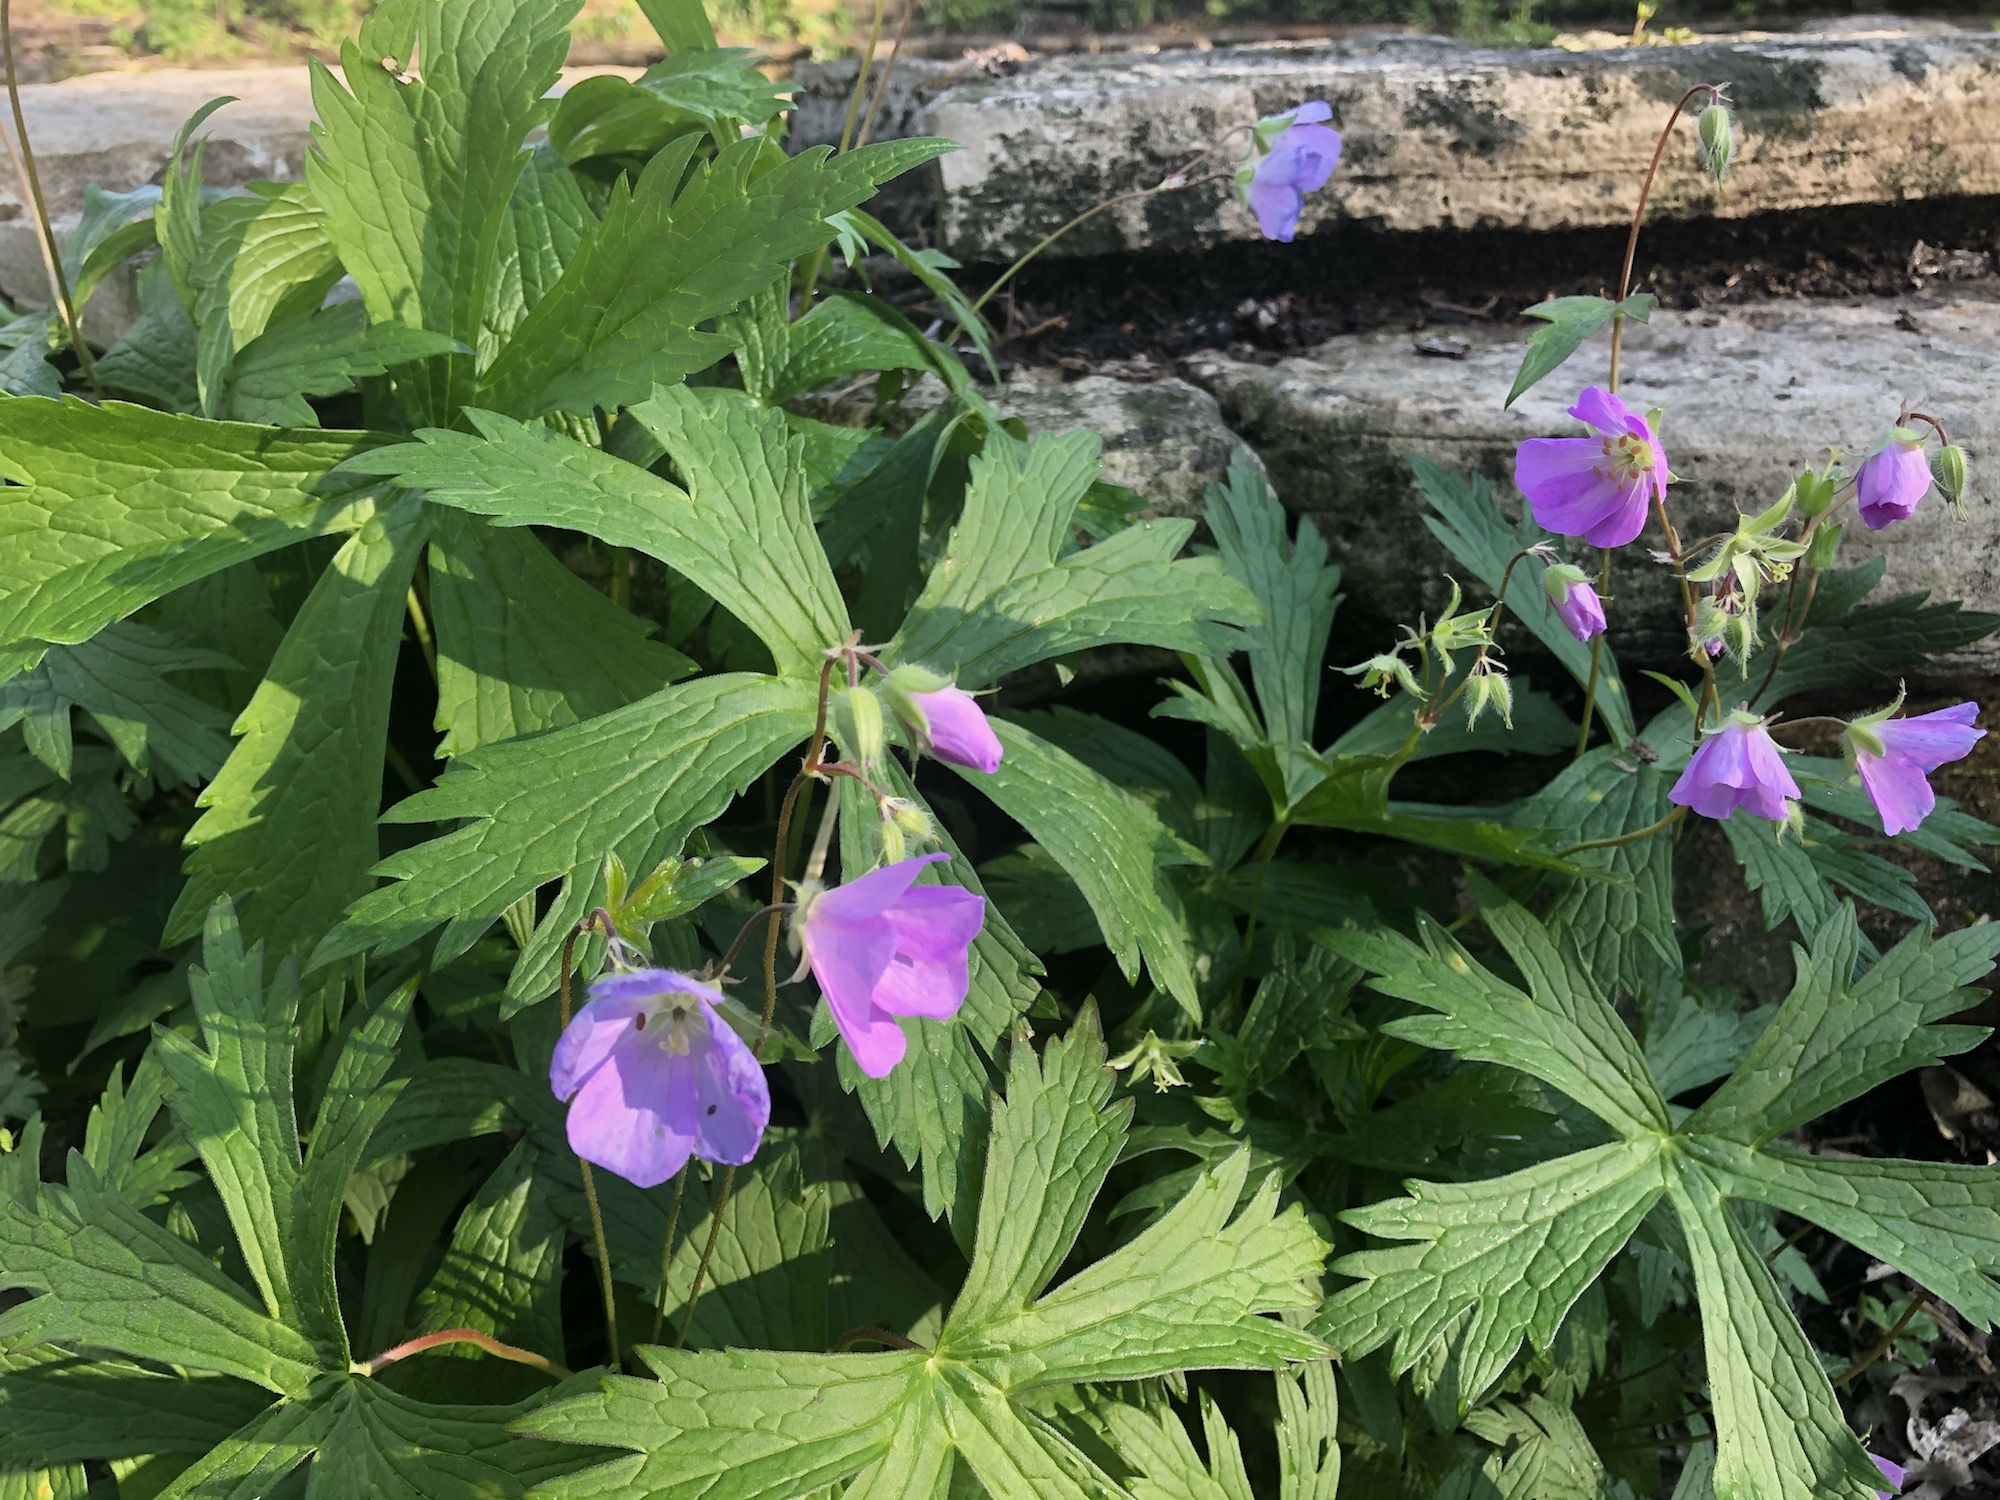 Wild Geranium by Council Ring in Oak Savanna on May 20, 2020.